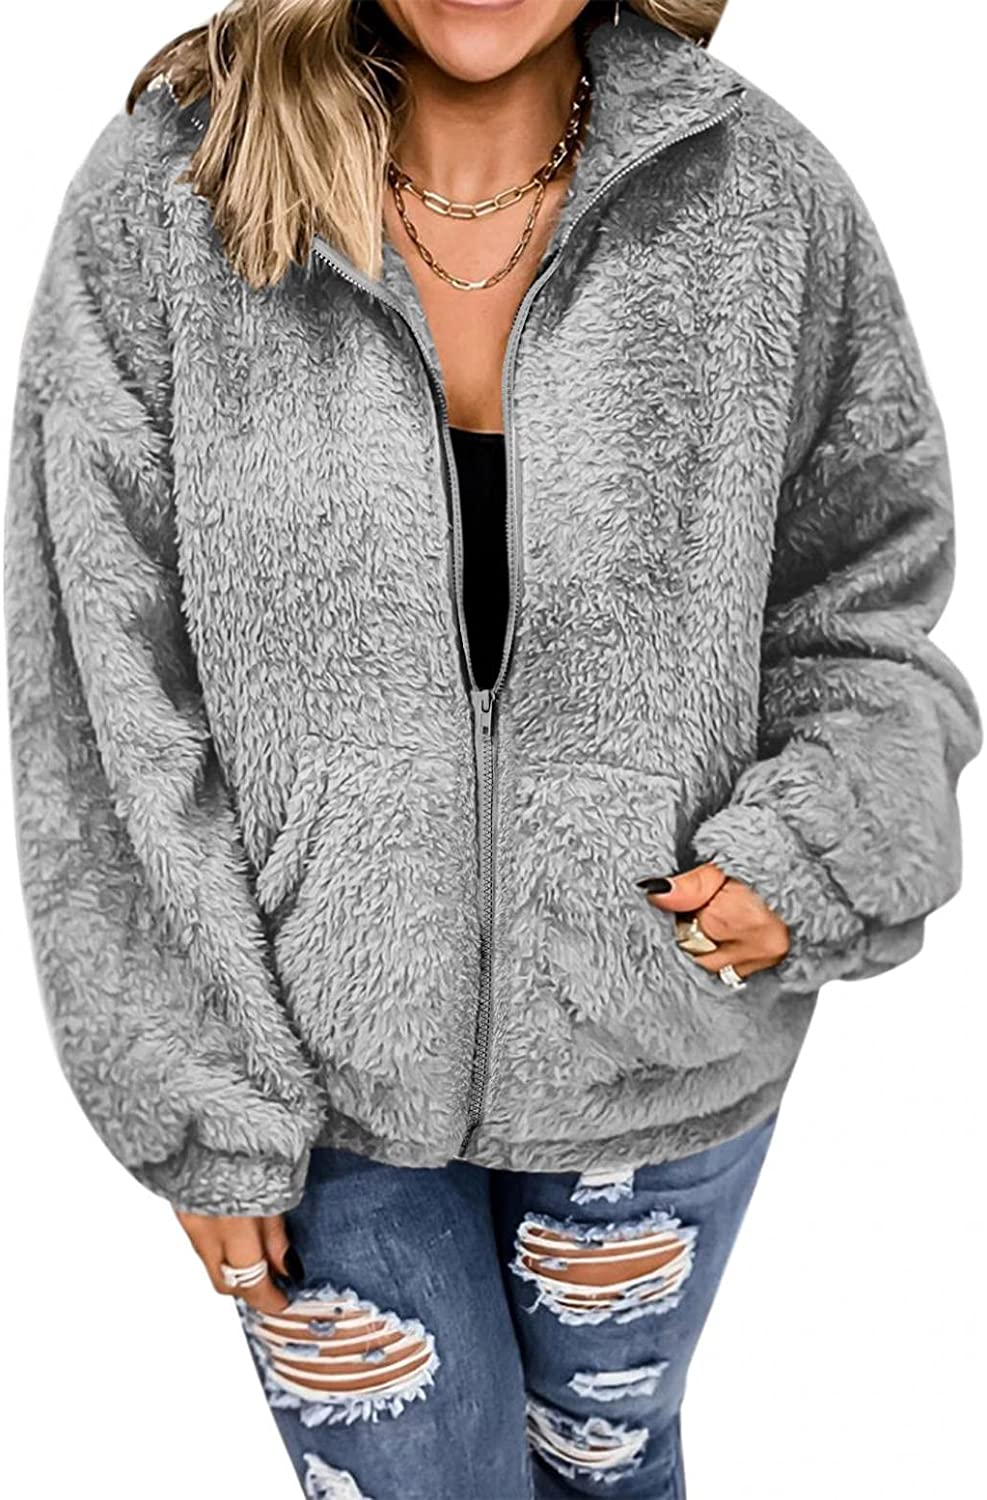 HCNTES Hoodies for Women Fashion Long Sleeve Zip Up Faux Fuzzy Pocket Oversized Jacket Coat for Warm Winter